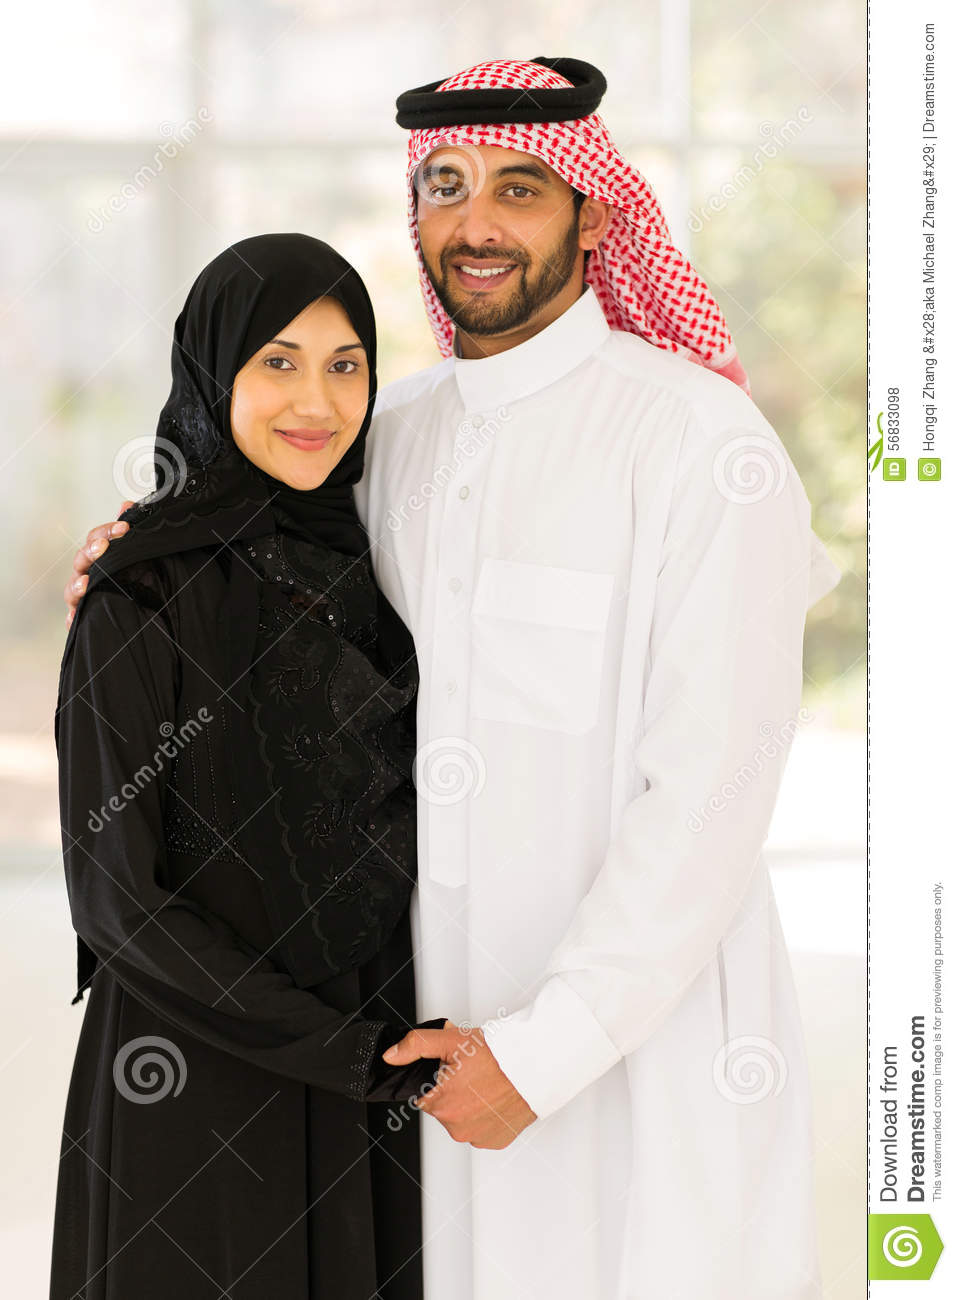 middle river muslim single women Find women seeking men listings looking for casual encounters on oodle classifieds join millions of people using oodle to find great personal ads don't miss what's happening in your neighborhood.